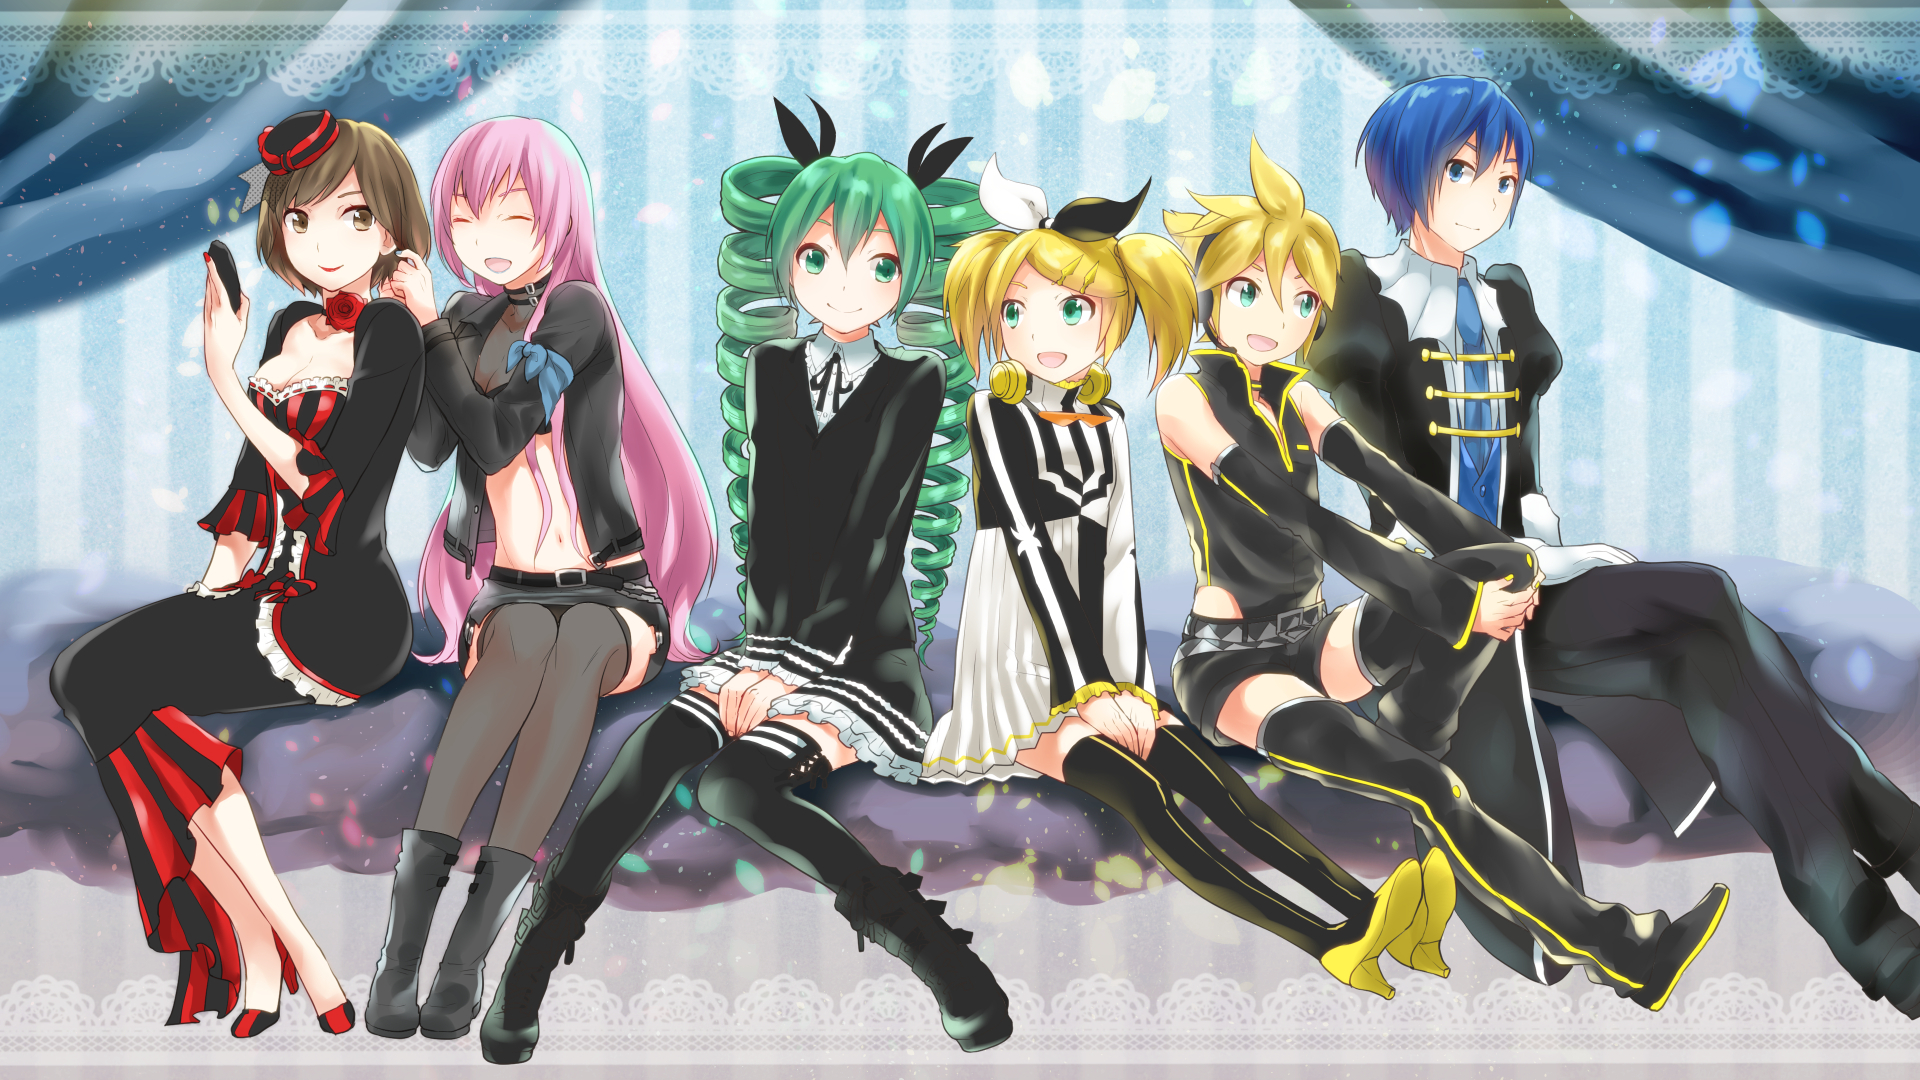 Vocaloid project diva 2nd h wallpaper 1920x1080 143104 wallpaperup - Kagamine rin project diva ...